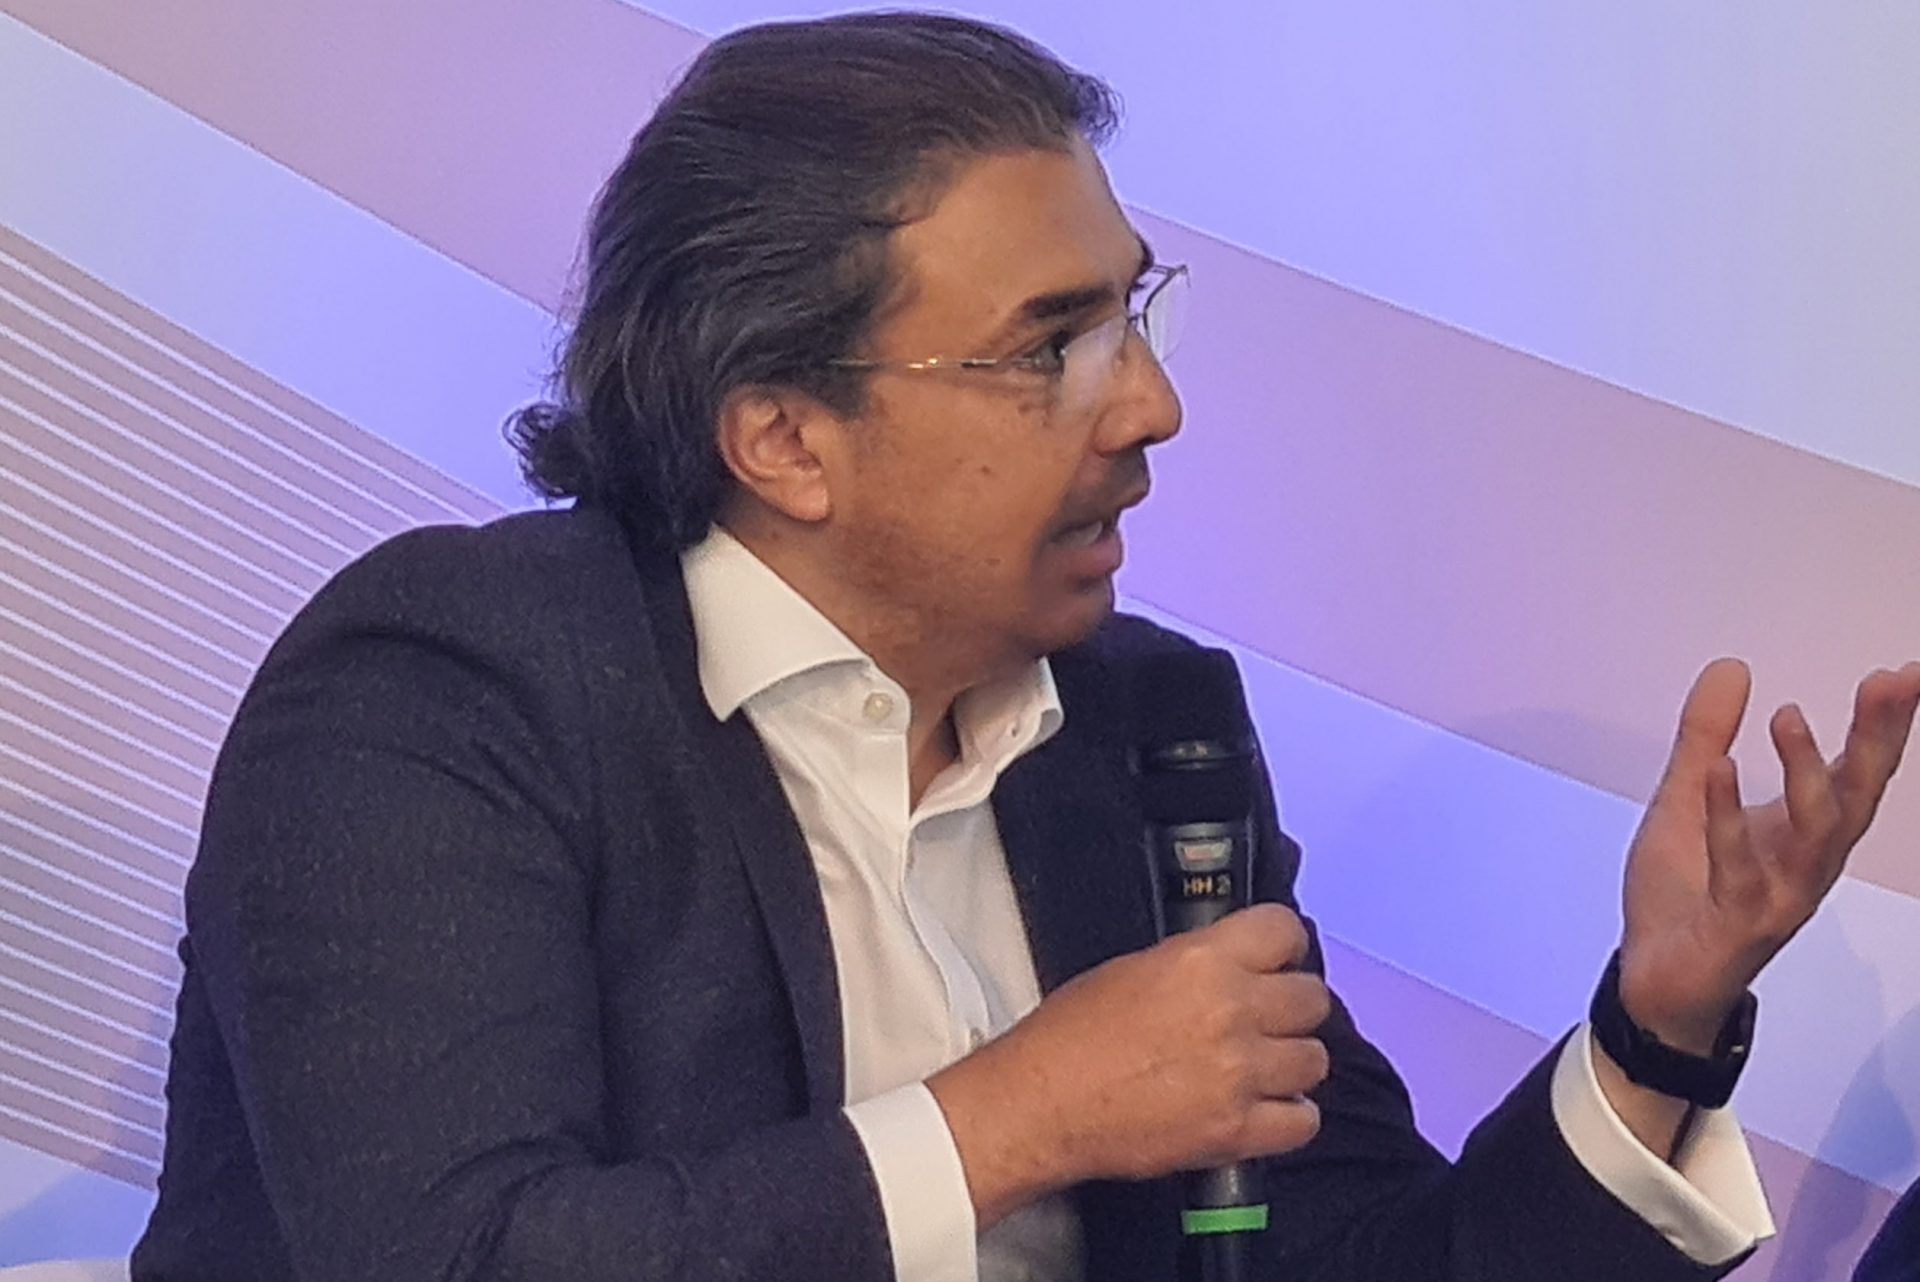 Ahmed Essam CEO Vodafone UK at Connected Britain 21 Sep 2021